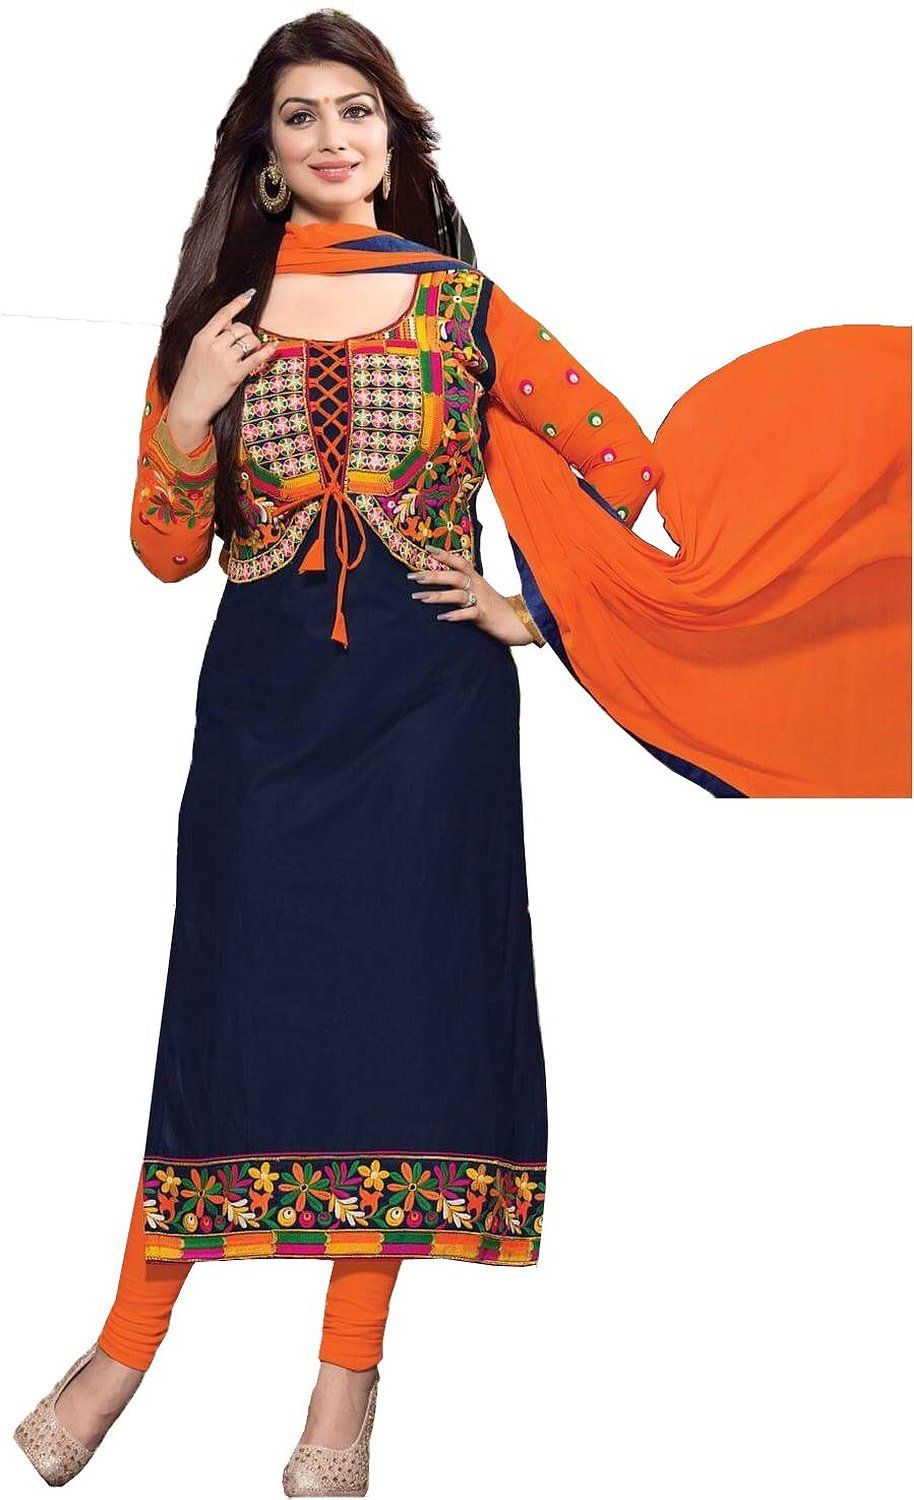 chakudee by blue cotton drees material: Amazon.in: Clothing ...